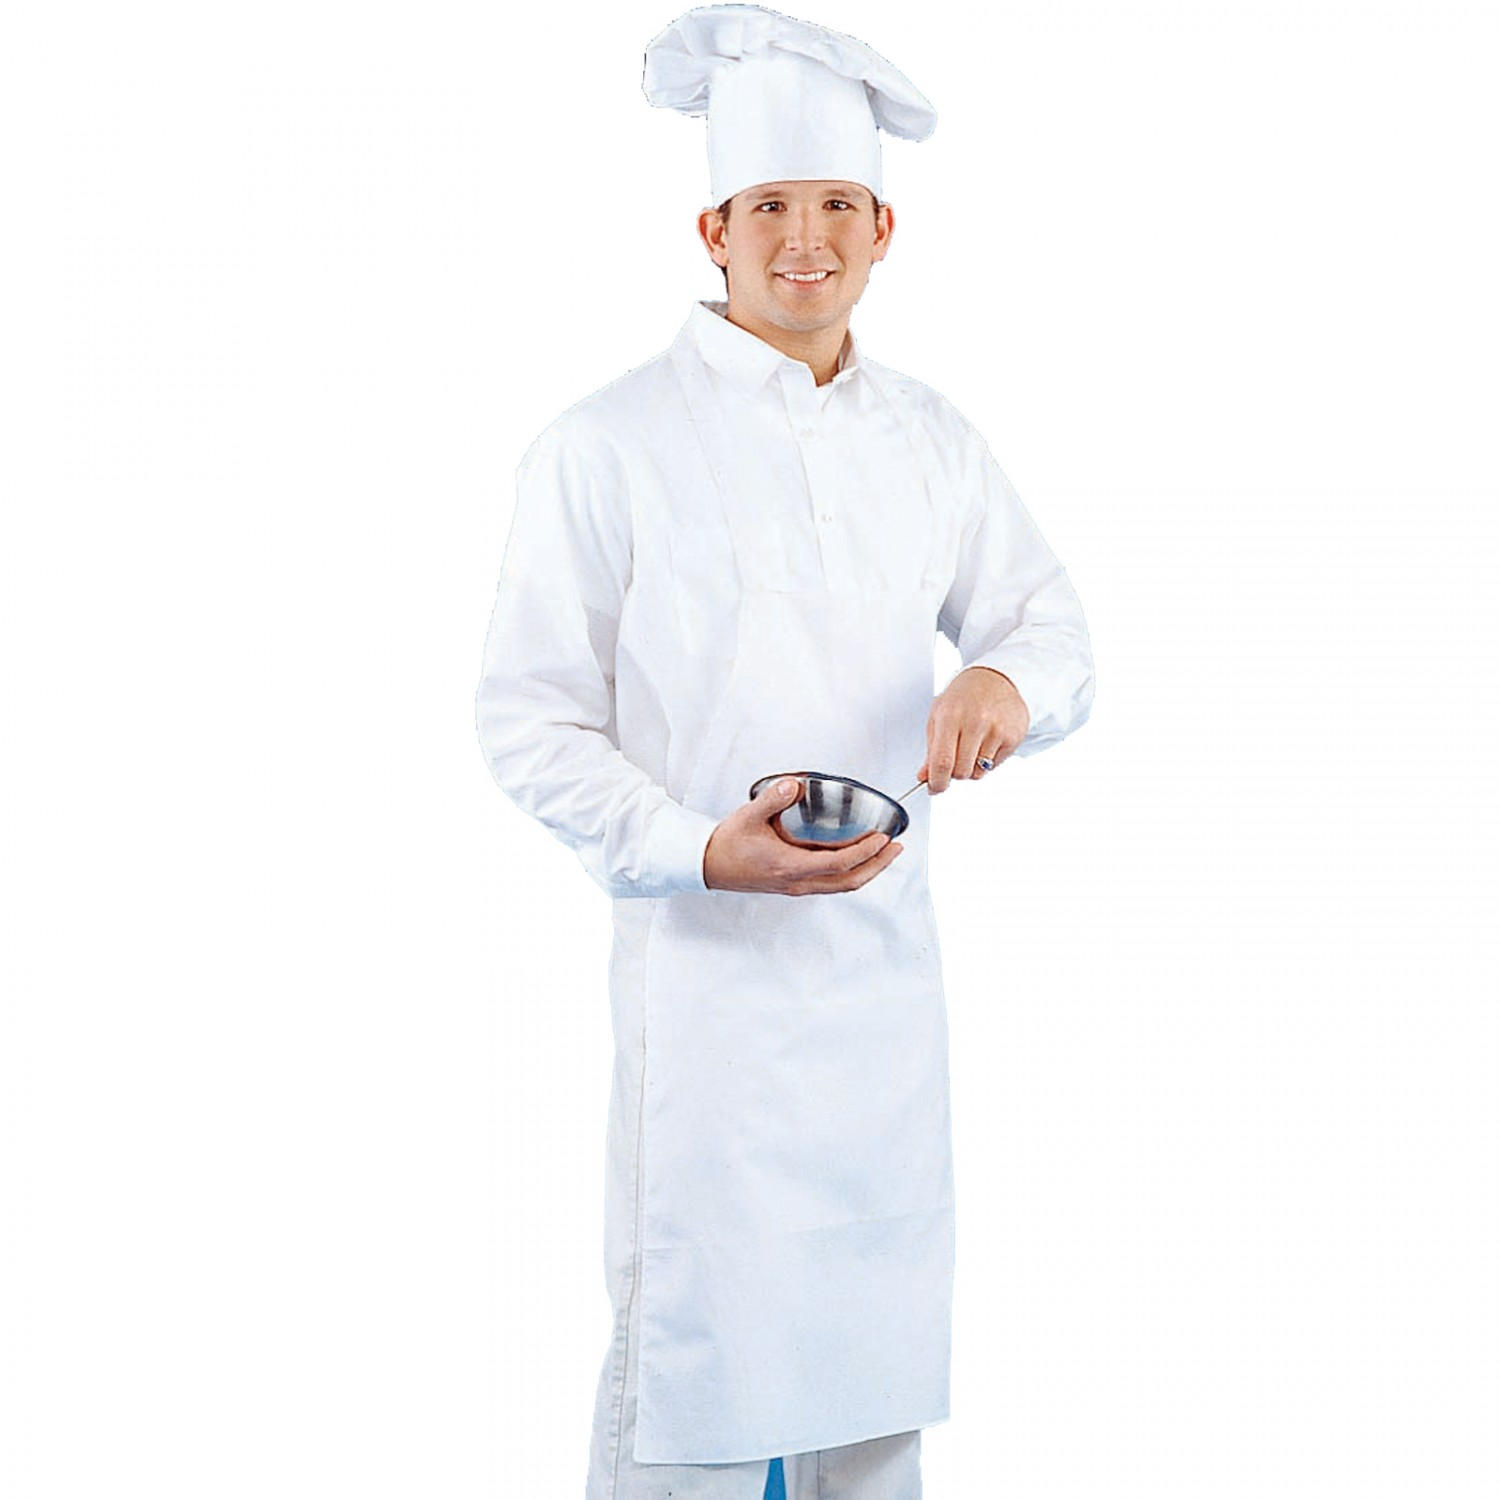 Chef Apron | Manufacturer,Supplier & Exporter of home Textile (Bed ...